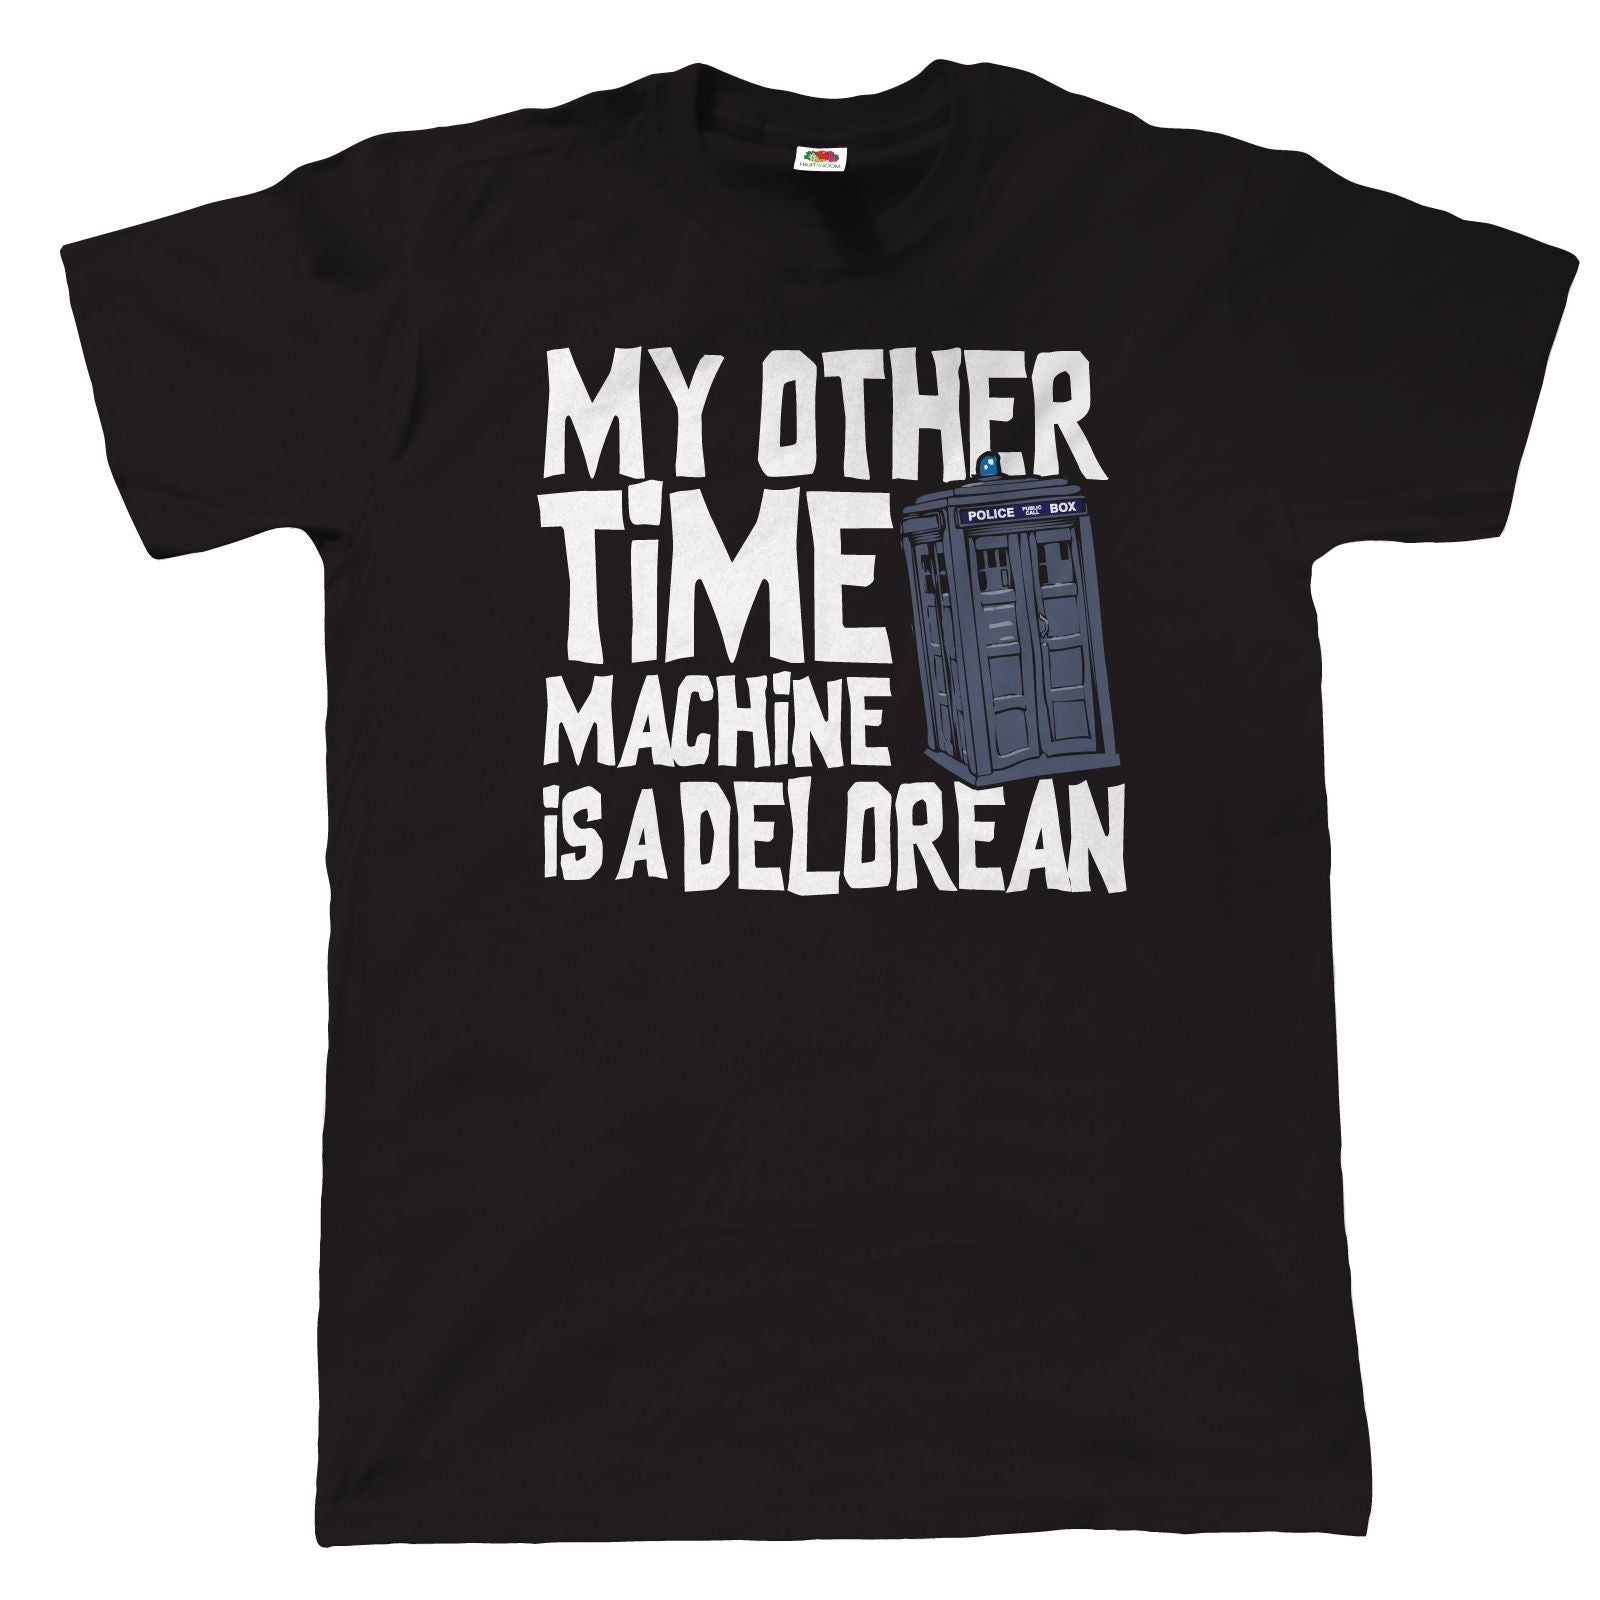 My Other Time Machine Is A Delorean, Mens Funny Sci-Fi T-Shirt